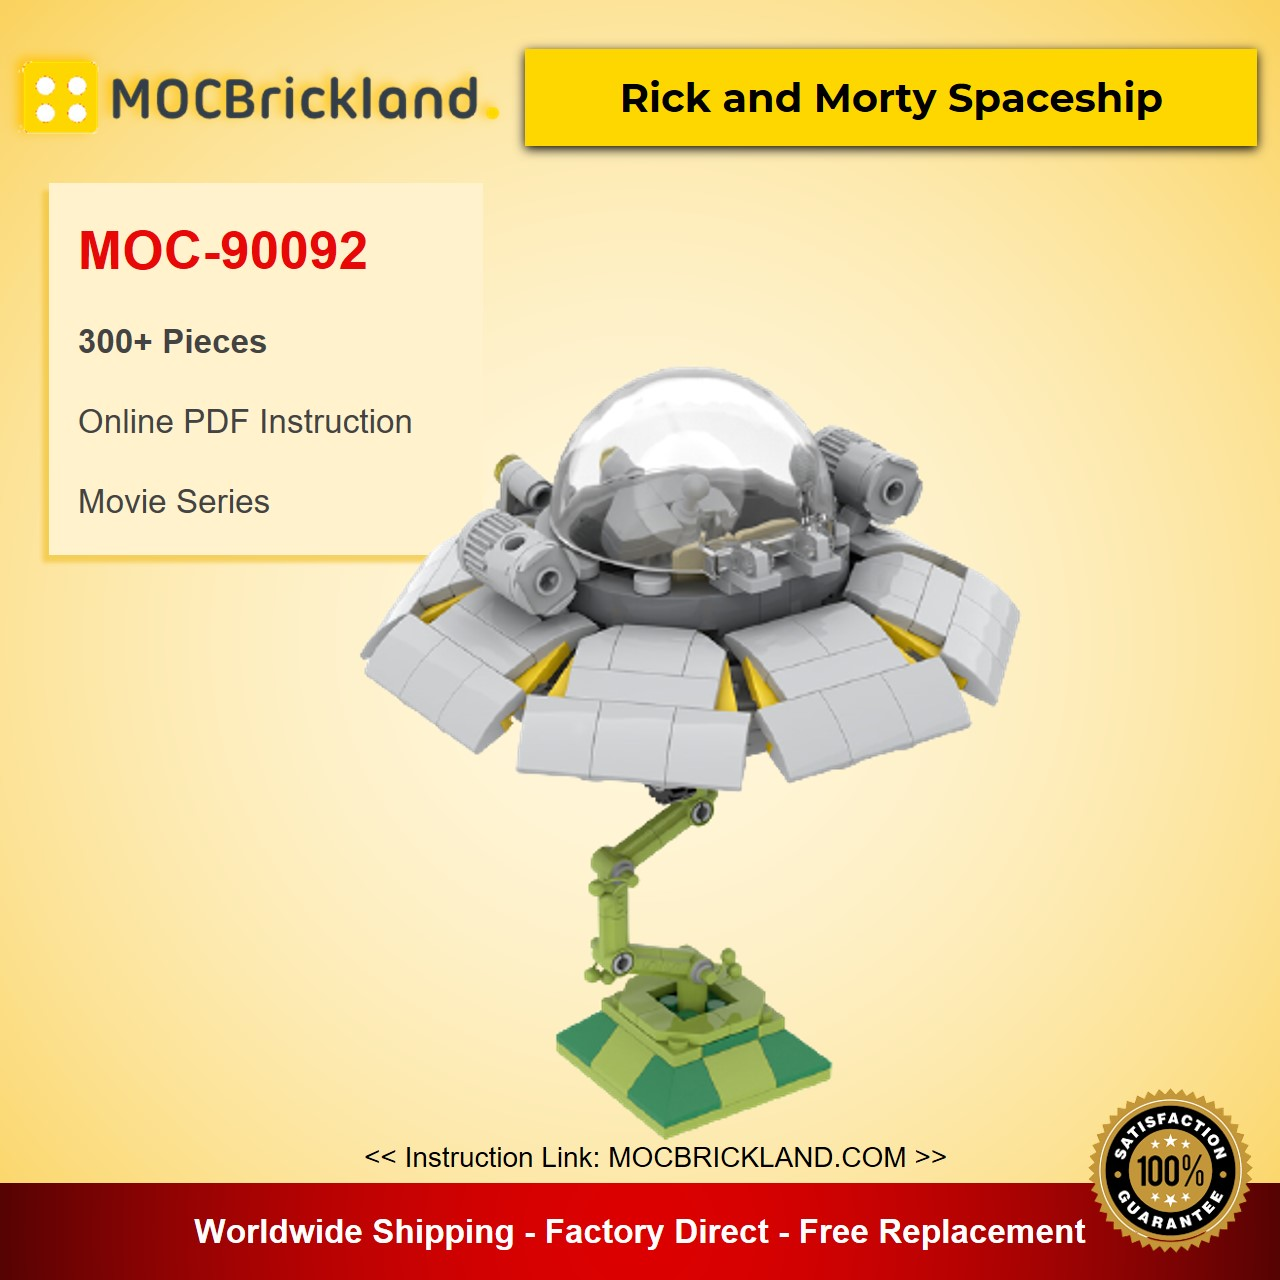 Rick and Morty Spaceship MOC-90092 Movie With 300 Pieces